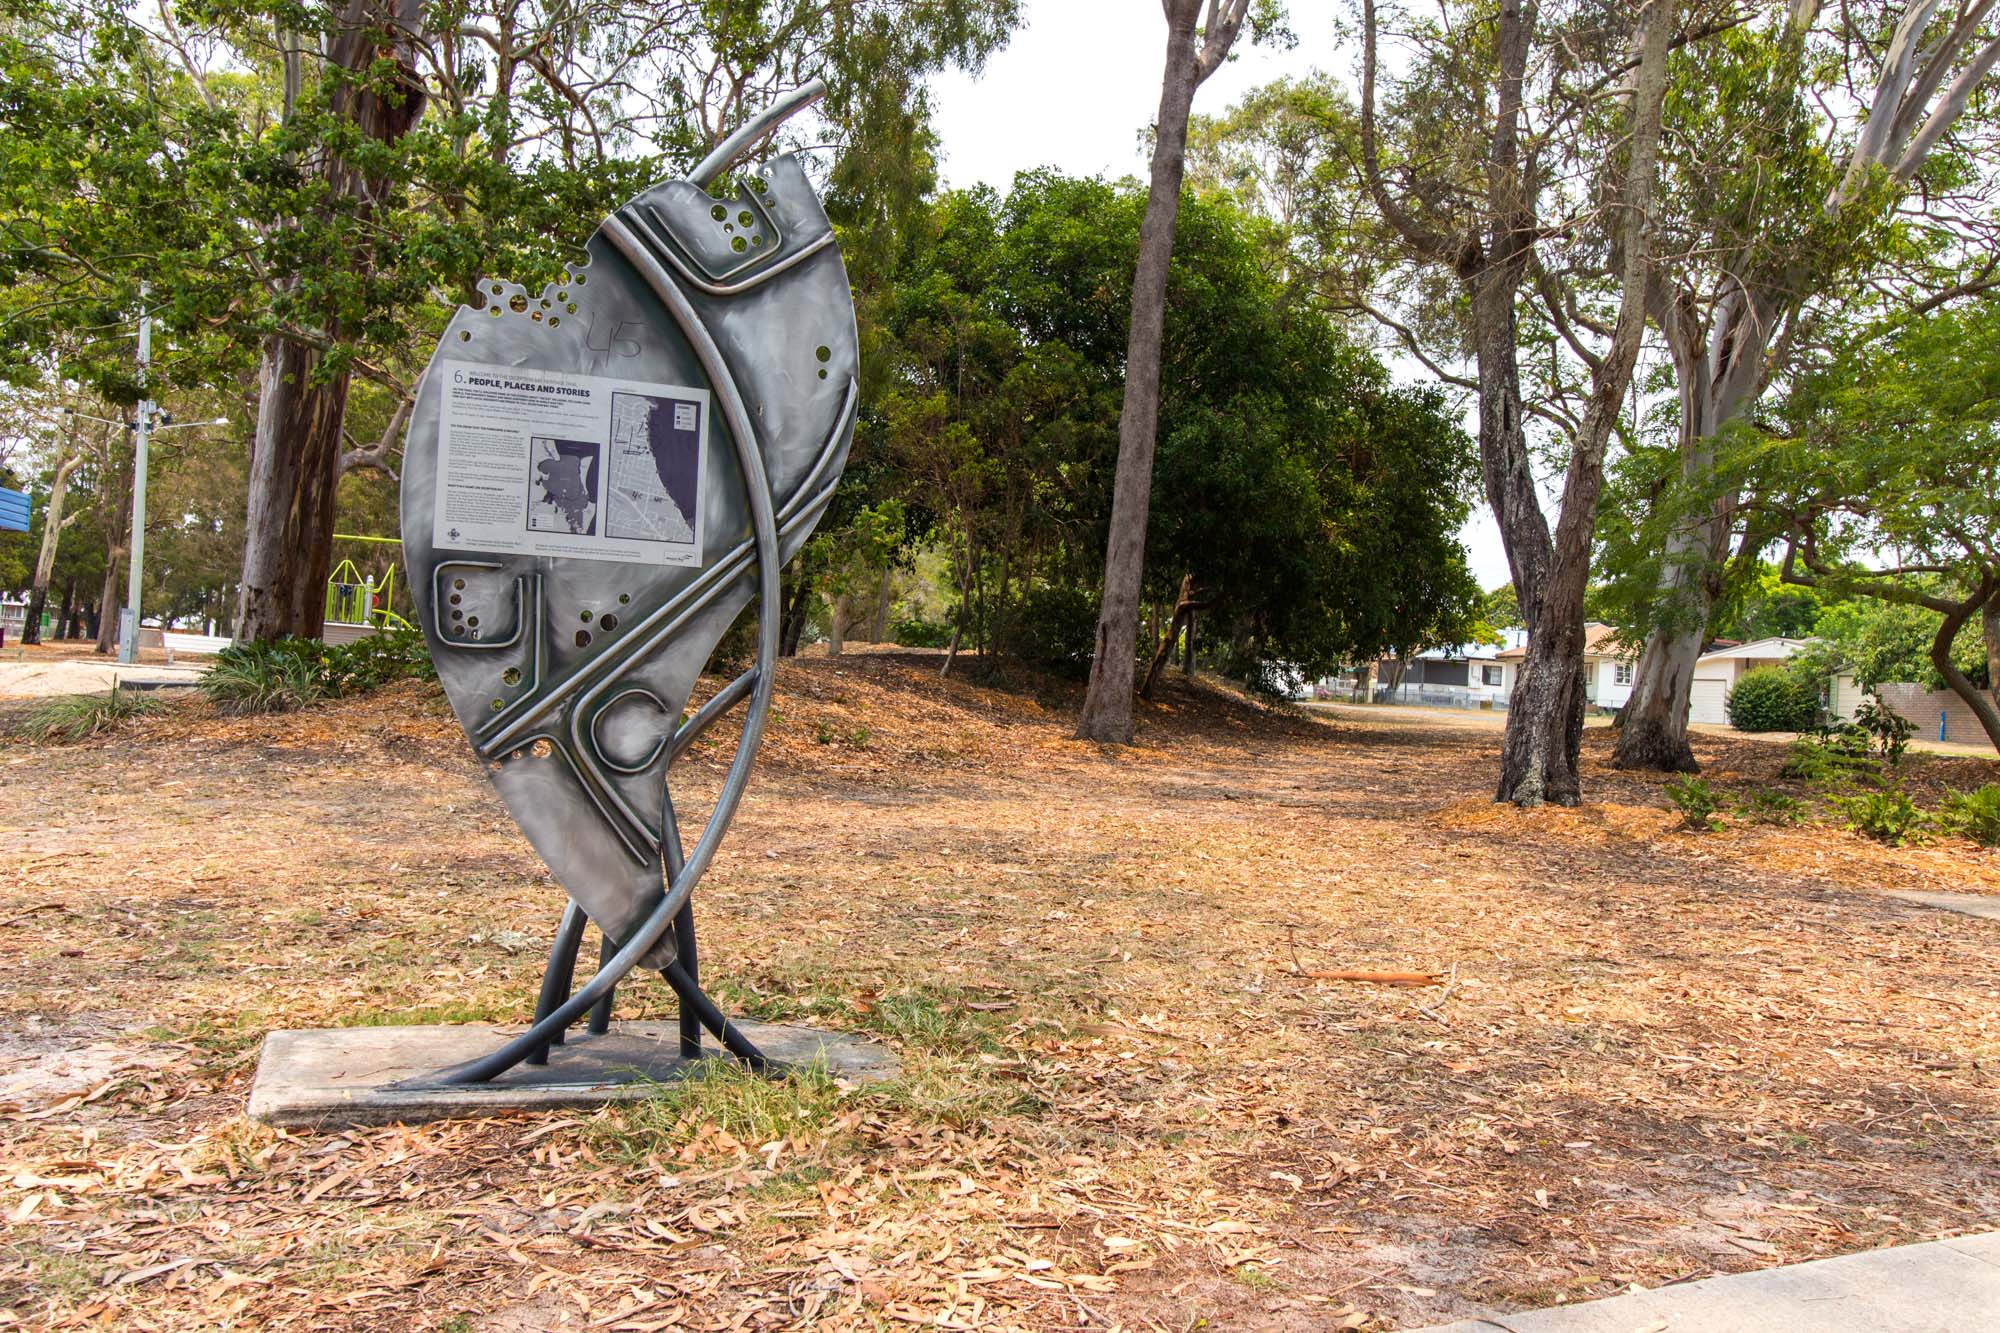 This sculpture has information about the trail